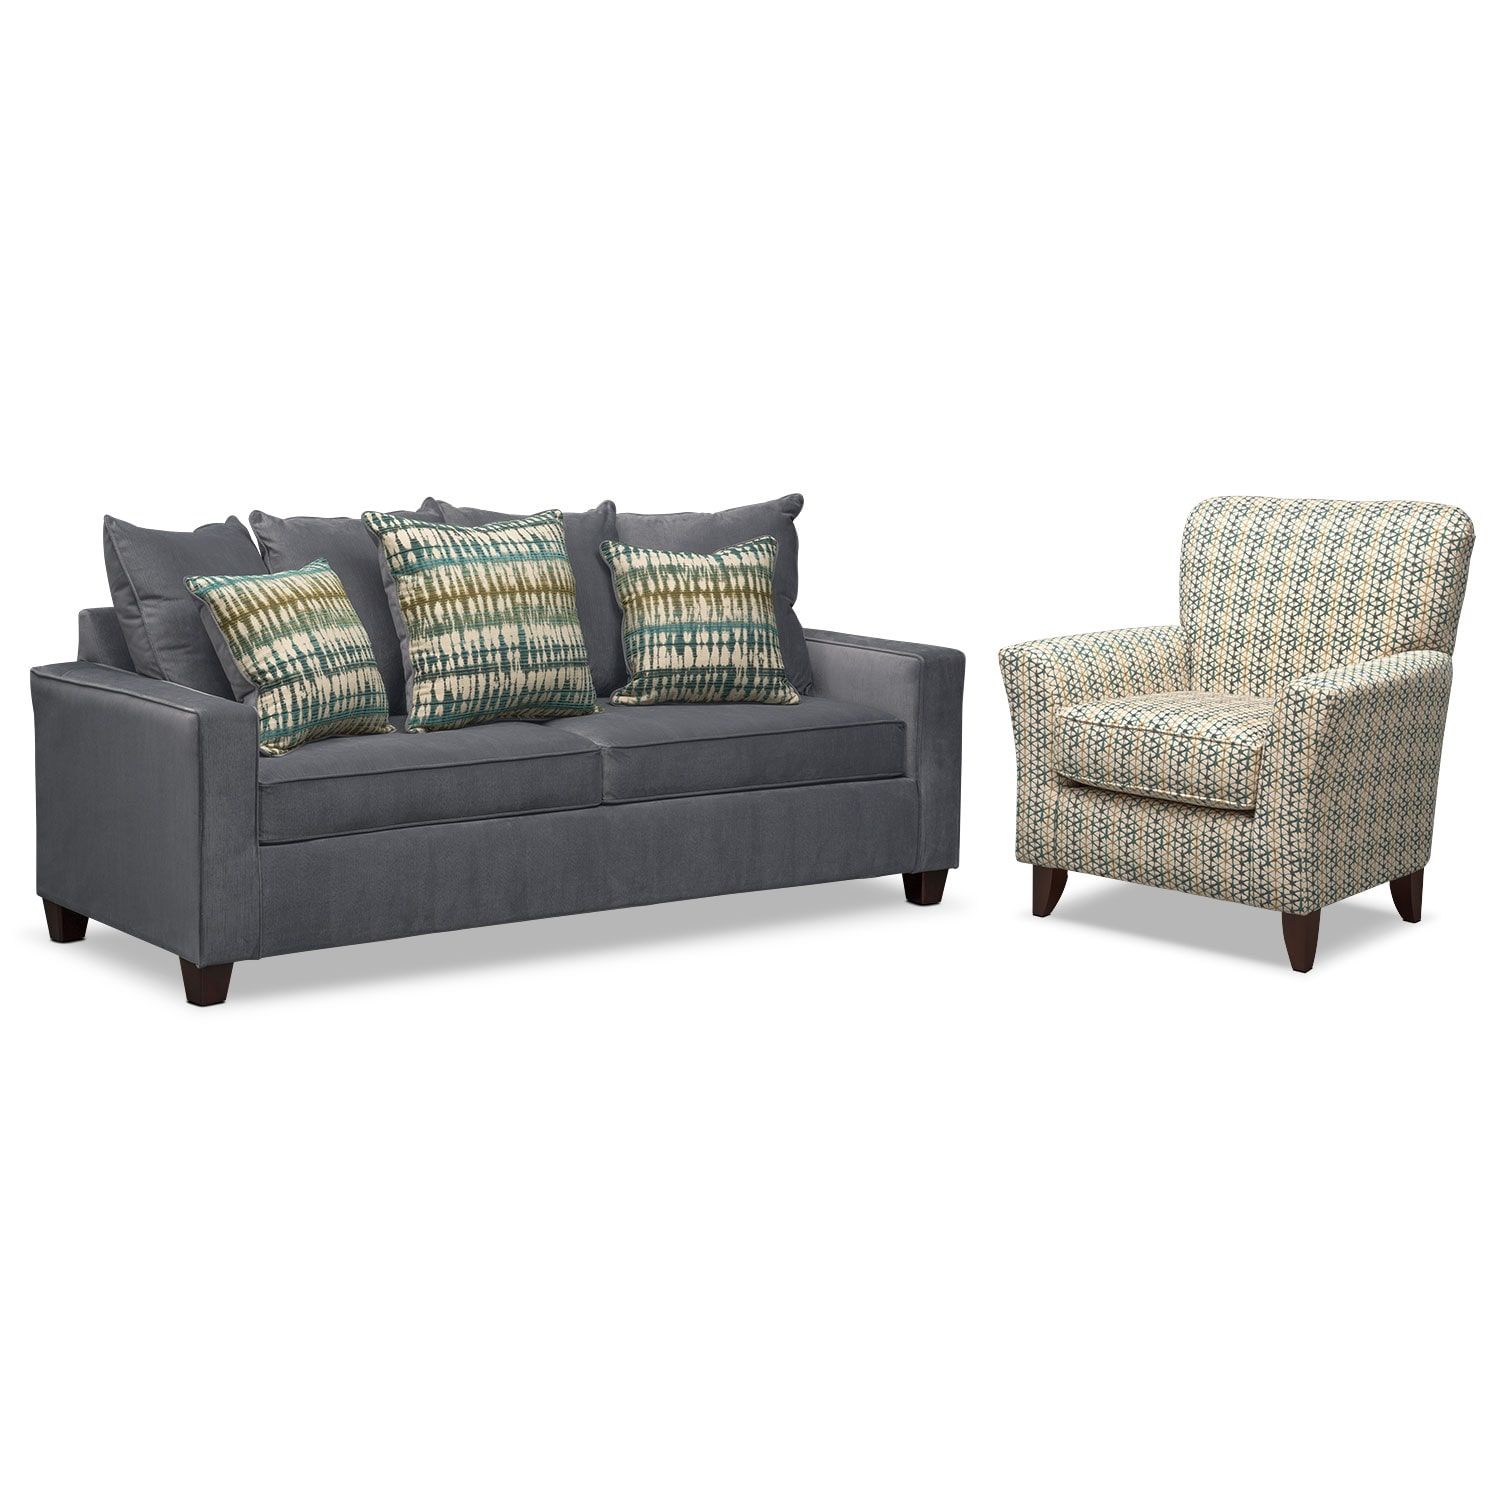 Bryden Queen Innerspring Sleeper Sofa And Accent Chair Set Slate American Signature Furniture